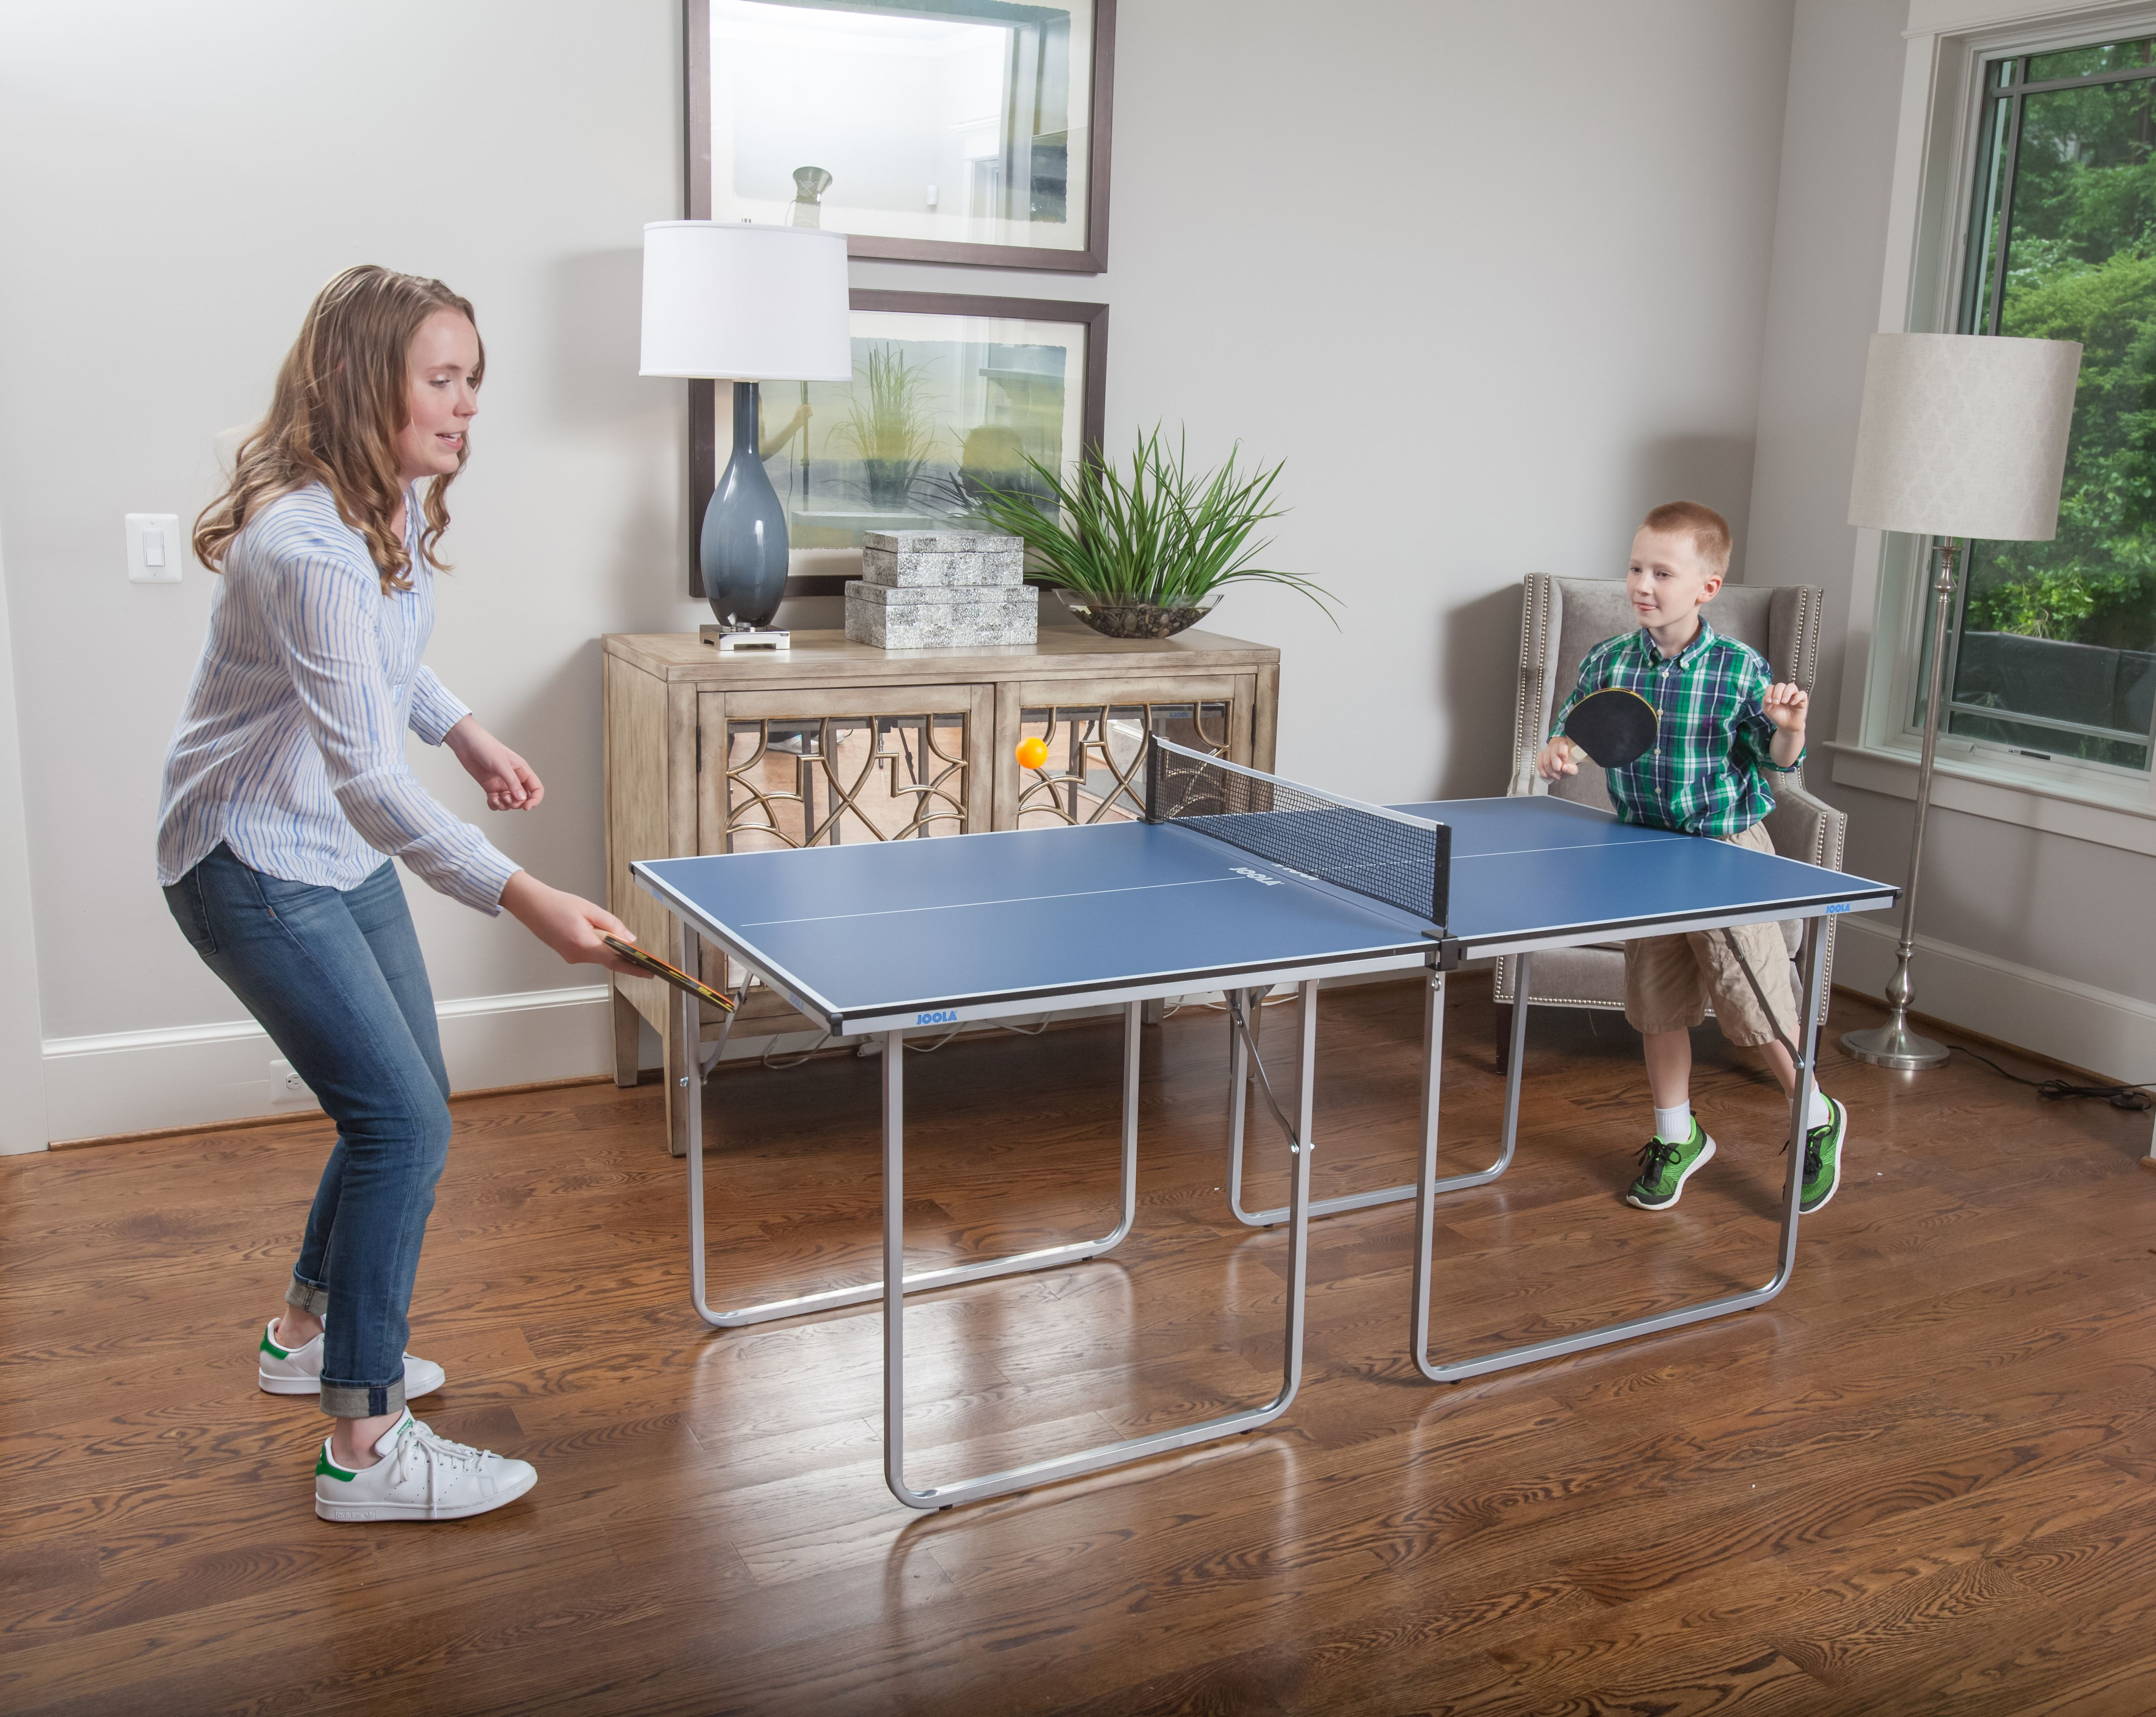 Midsize Sport Table Tennis Table Table Unique Tables Small Spaces